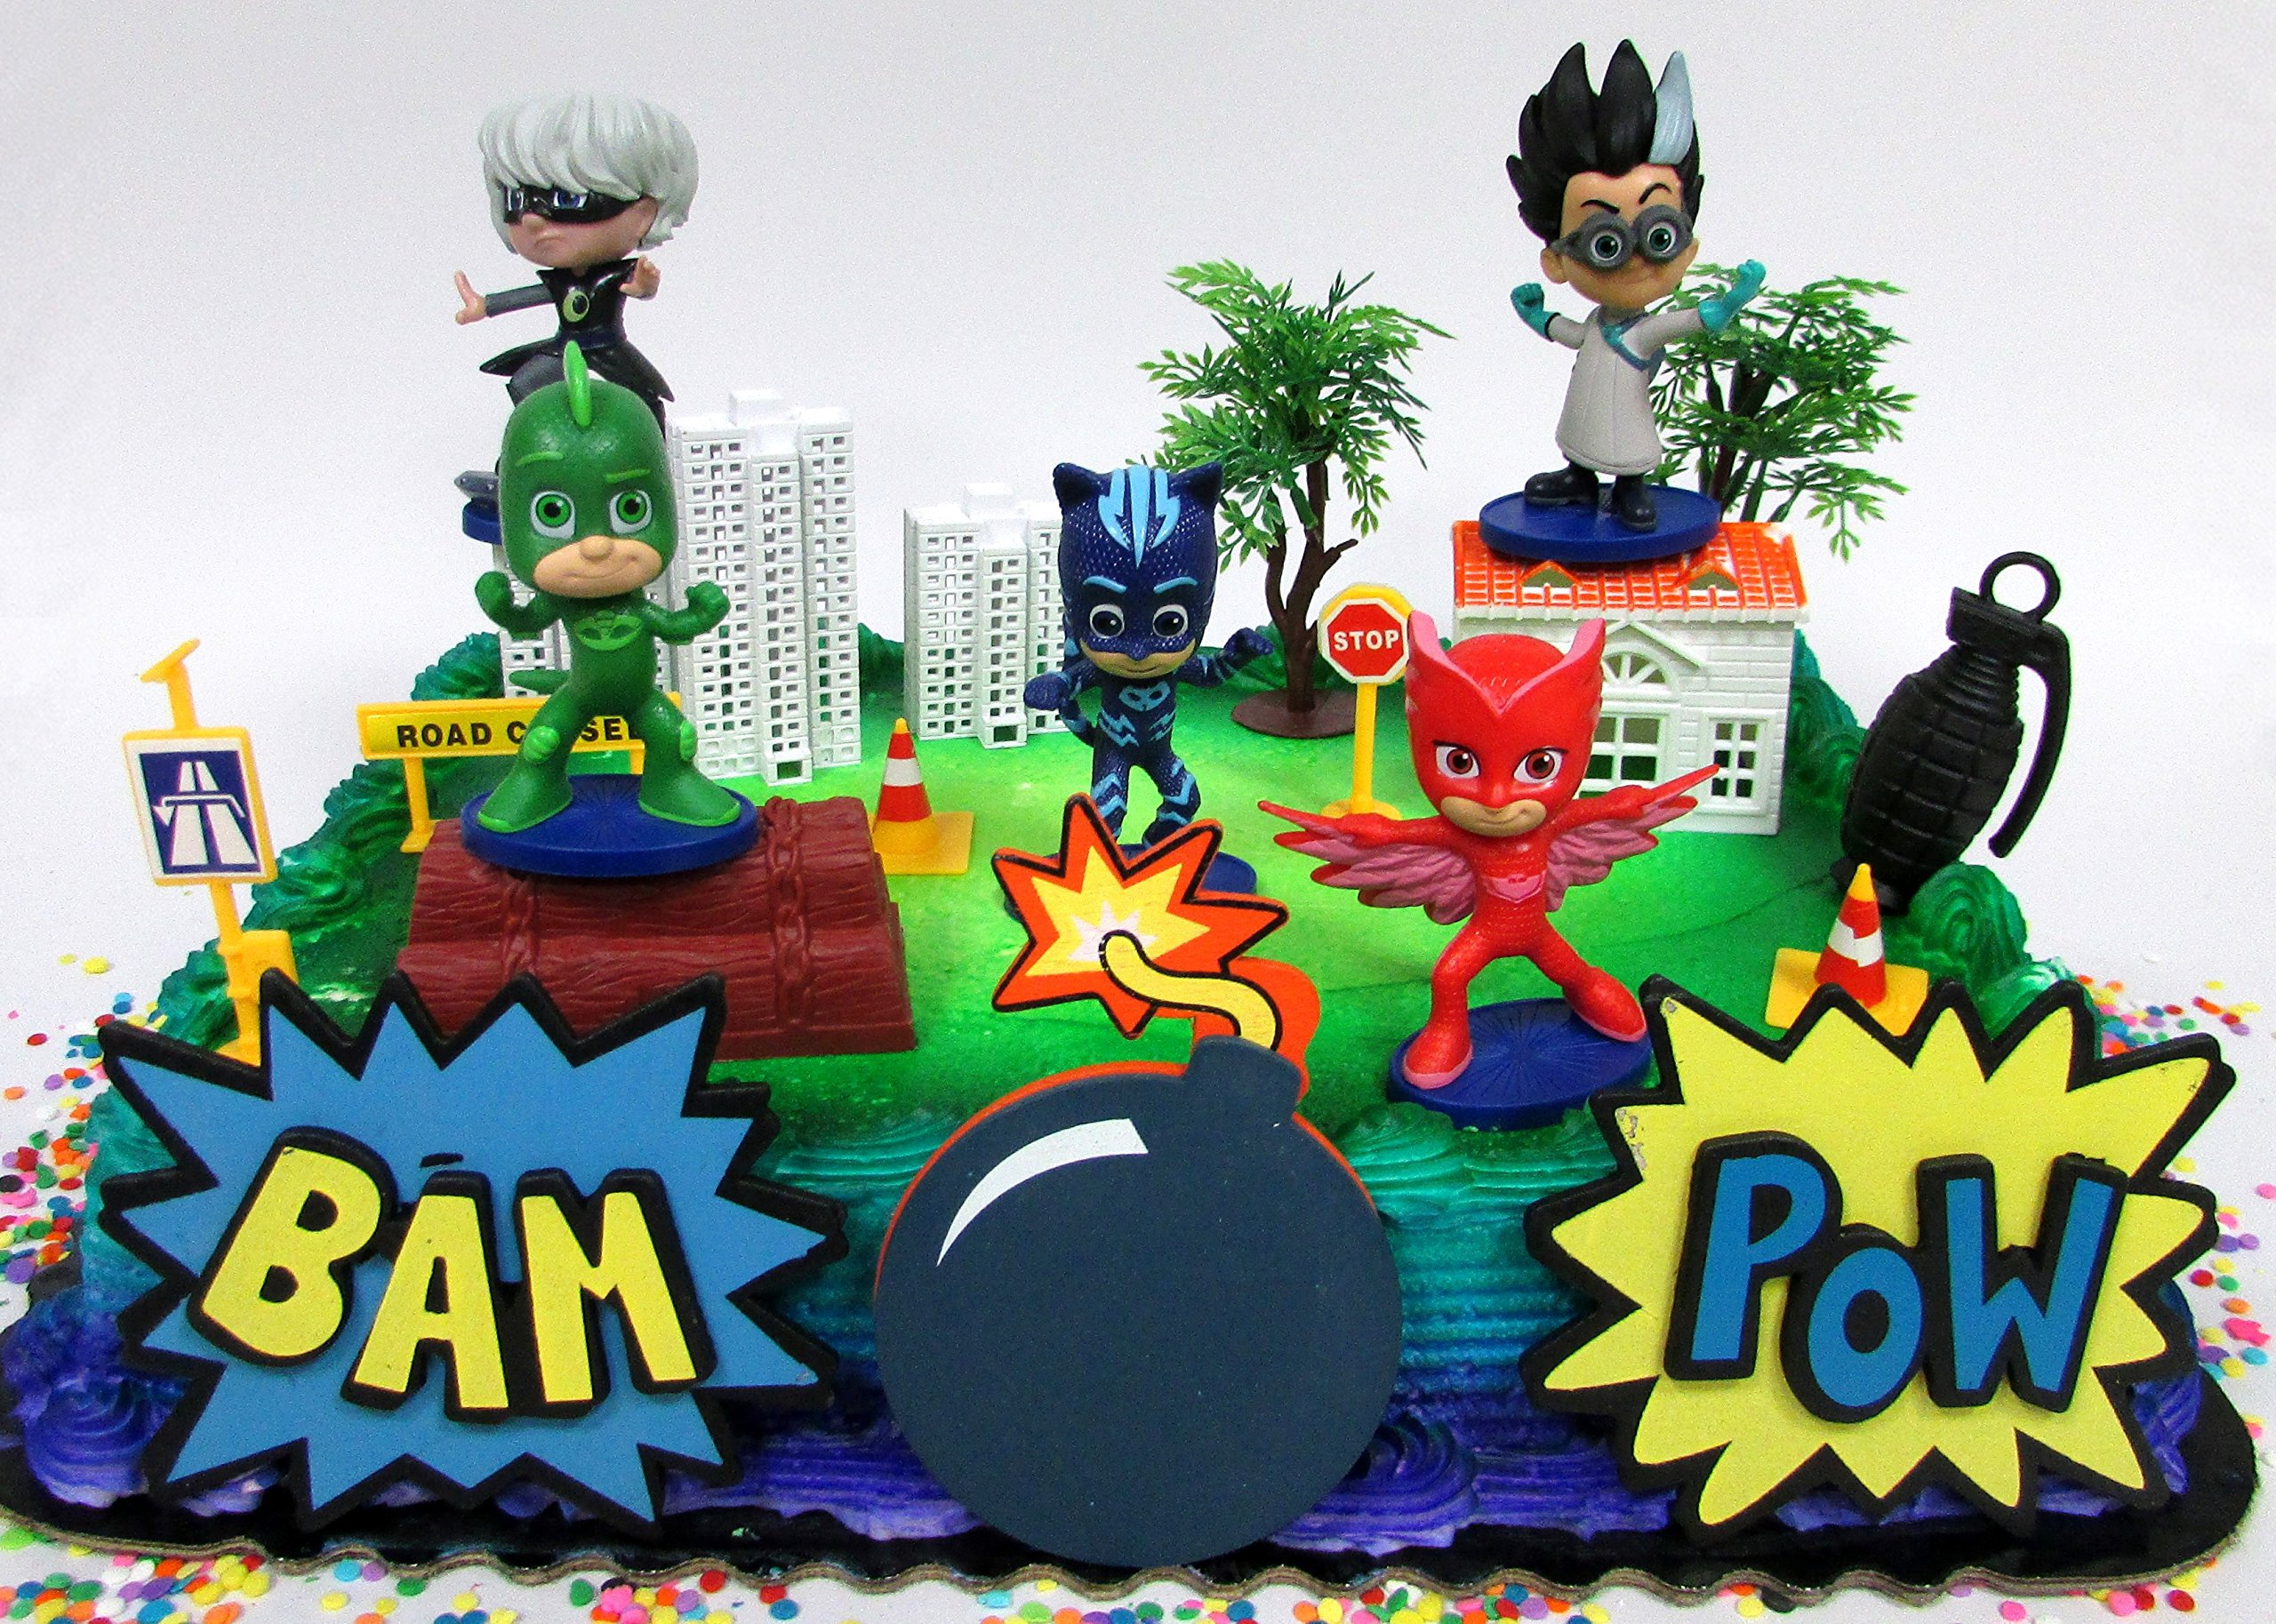 Super Hero PJ MASKS Deluxe Birthday Party Cake Topper Set Featuring